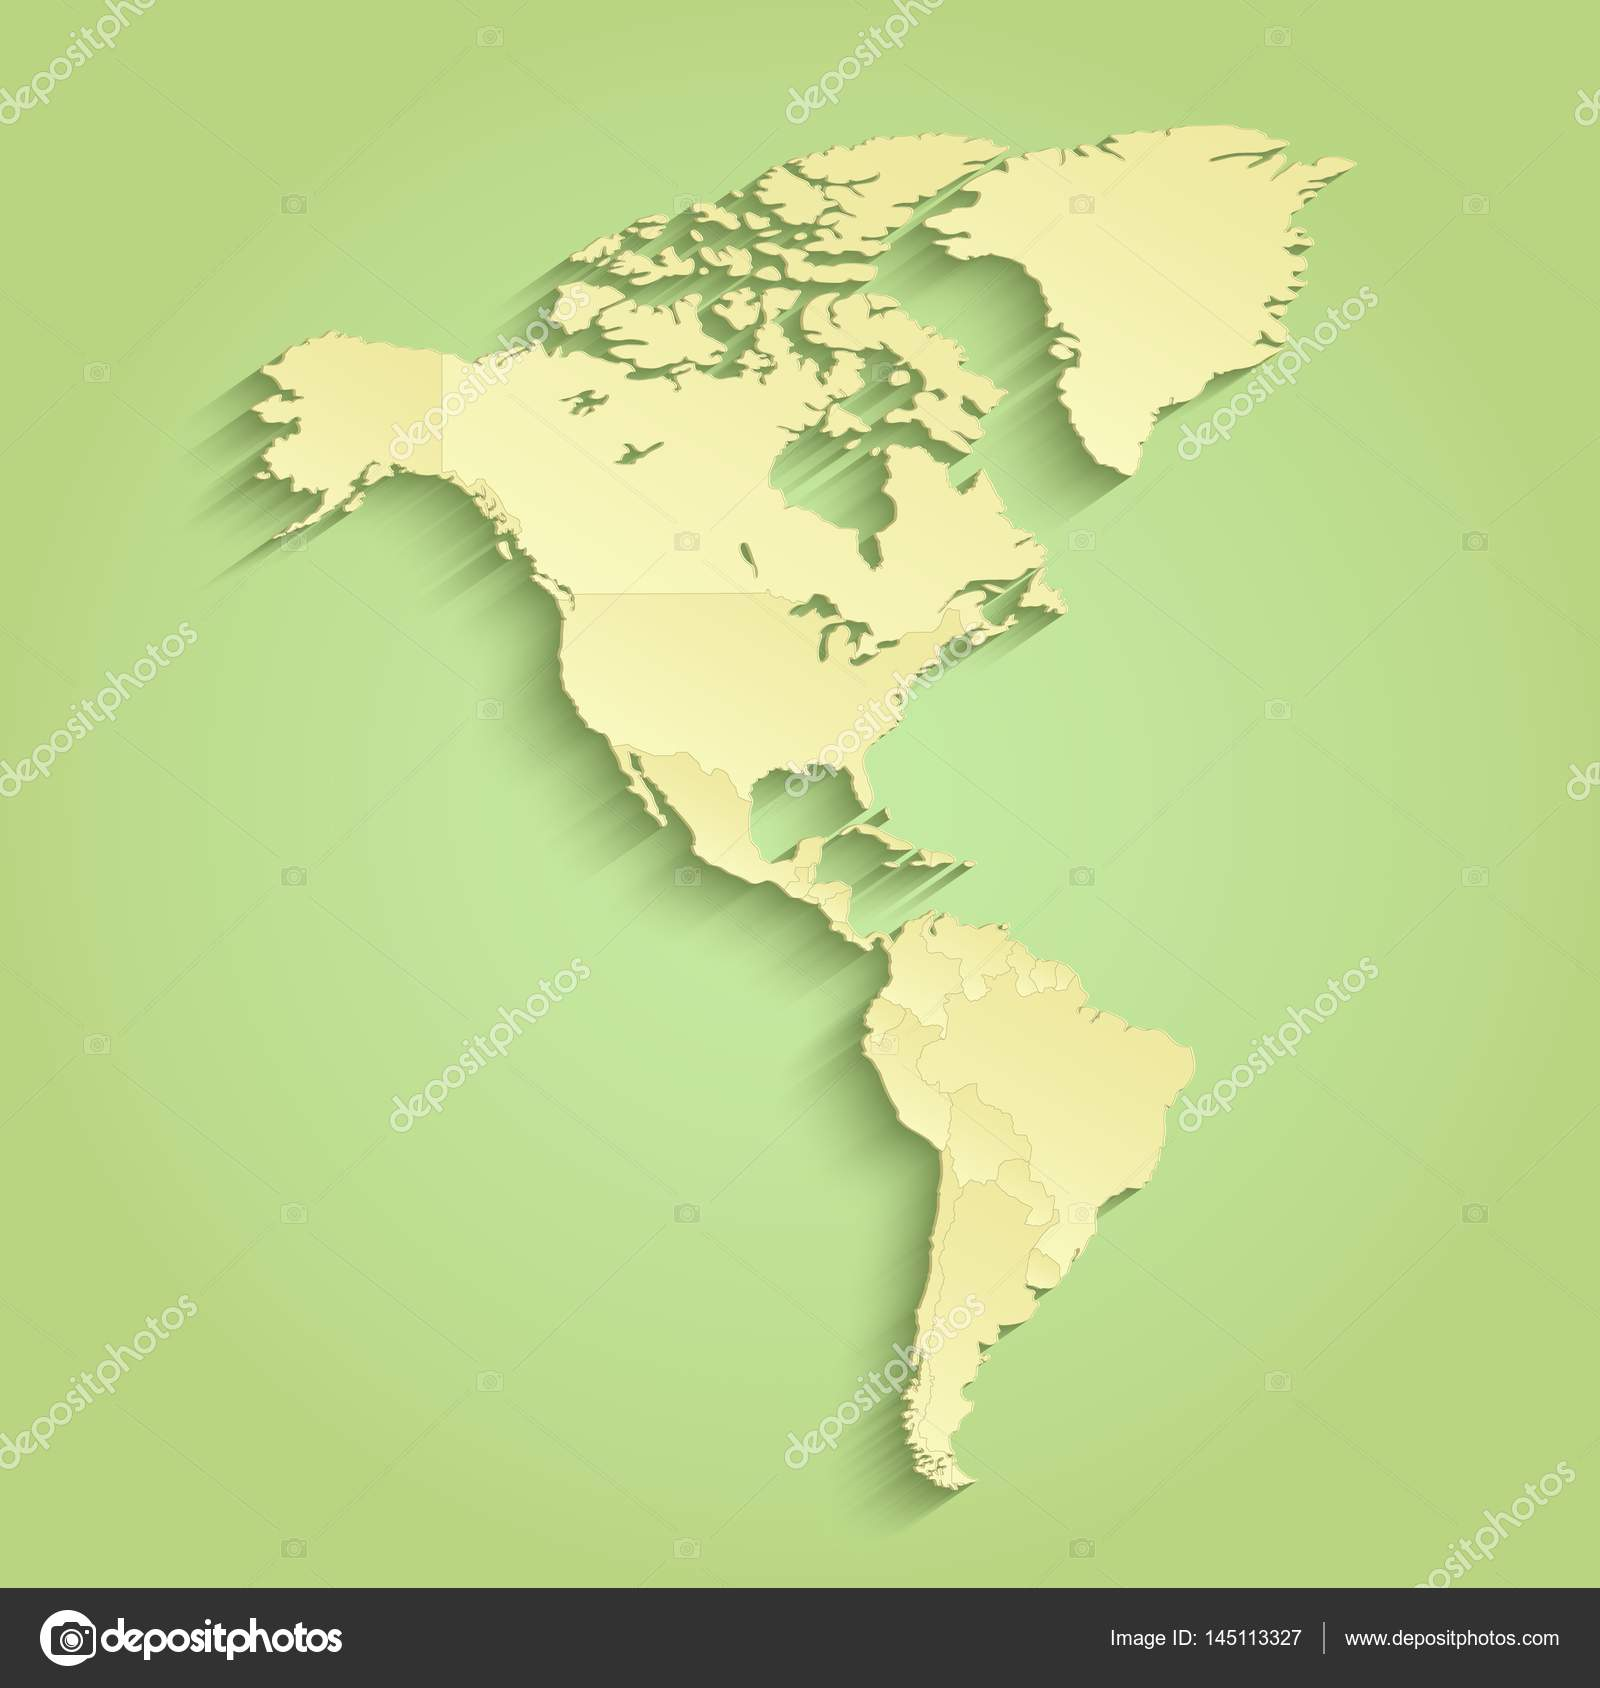 America map separate individual states green yellow raster stock america map separate individual states green yellow raster photo by mondih gumiabroncs Gallery